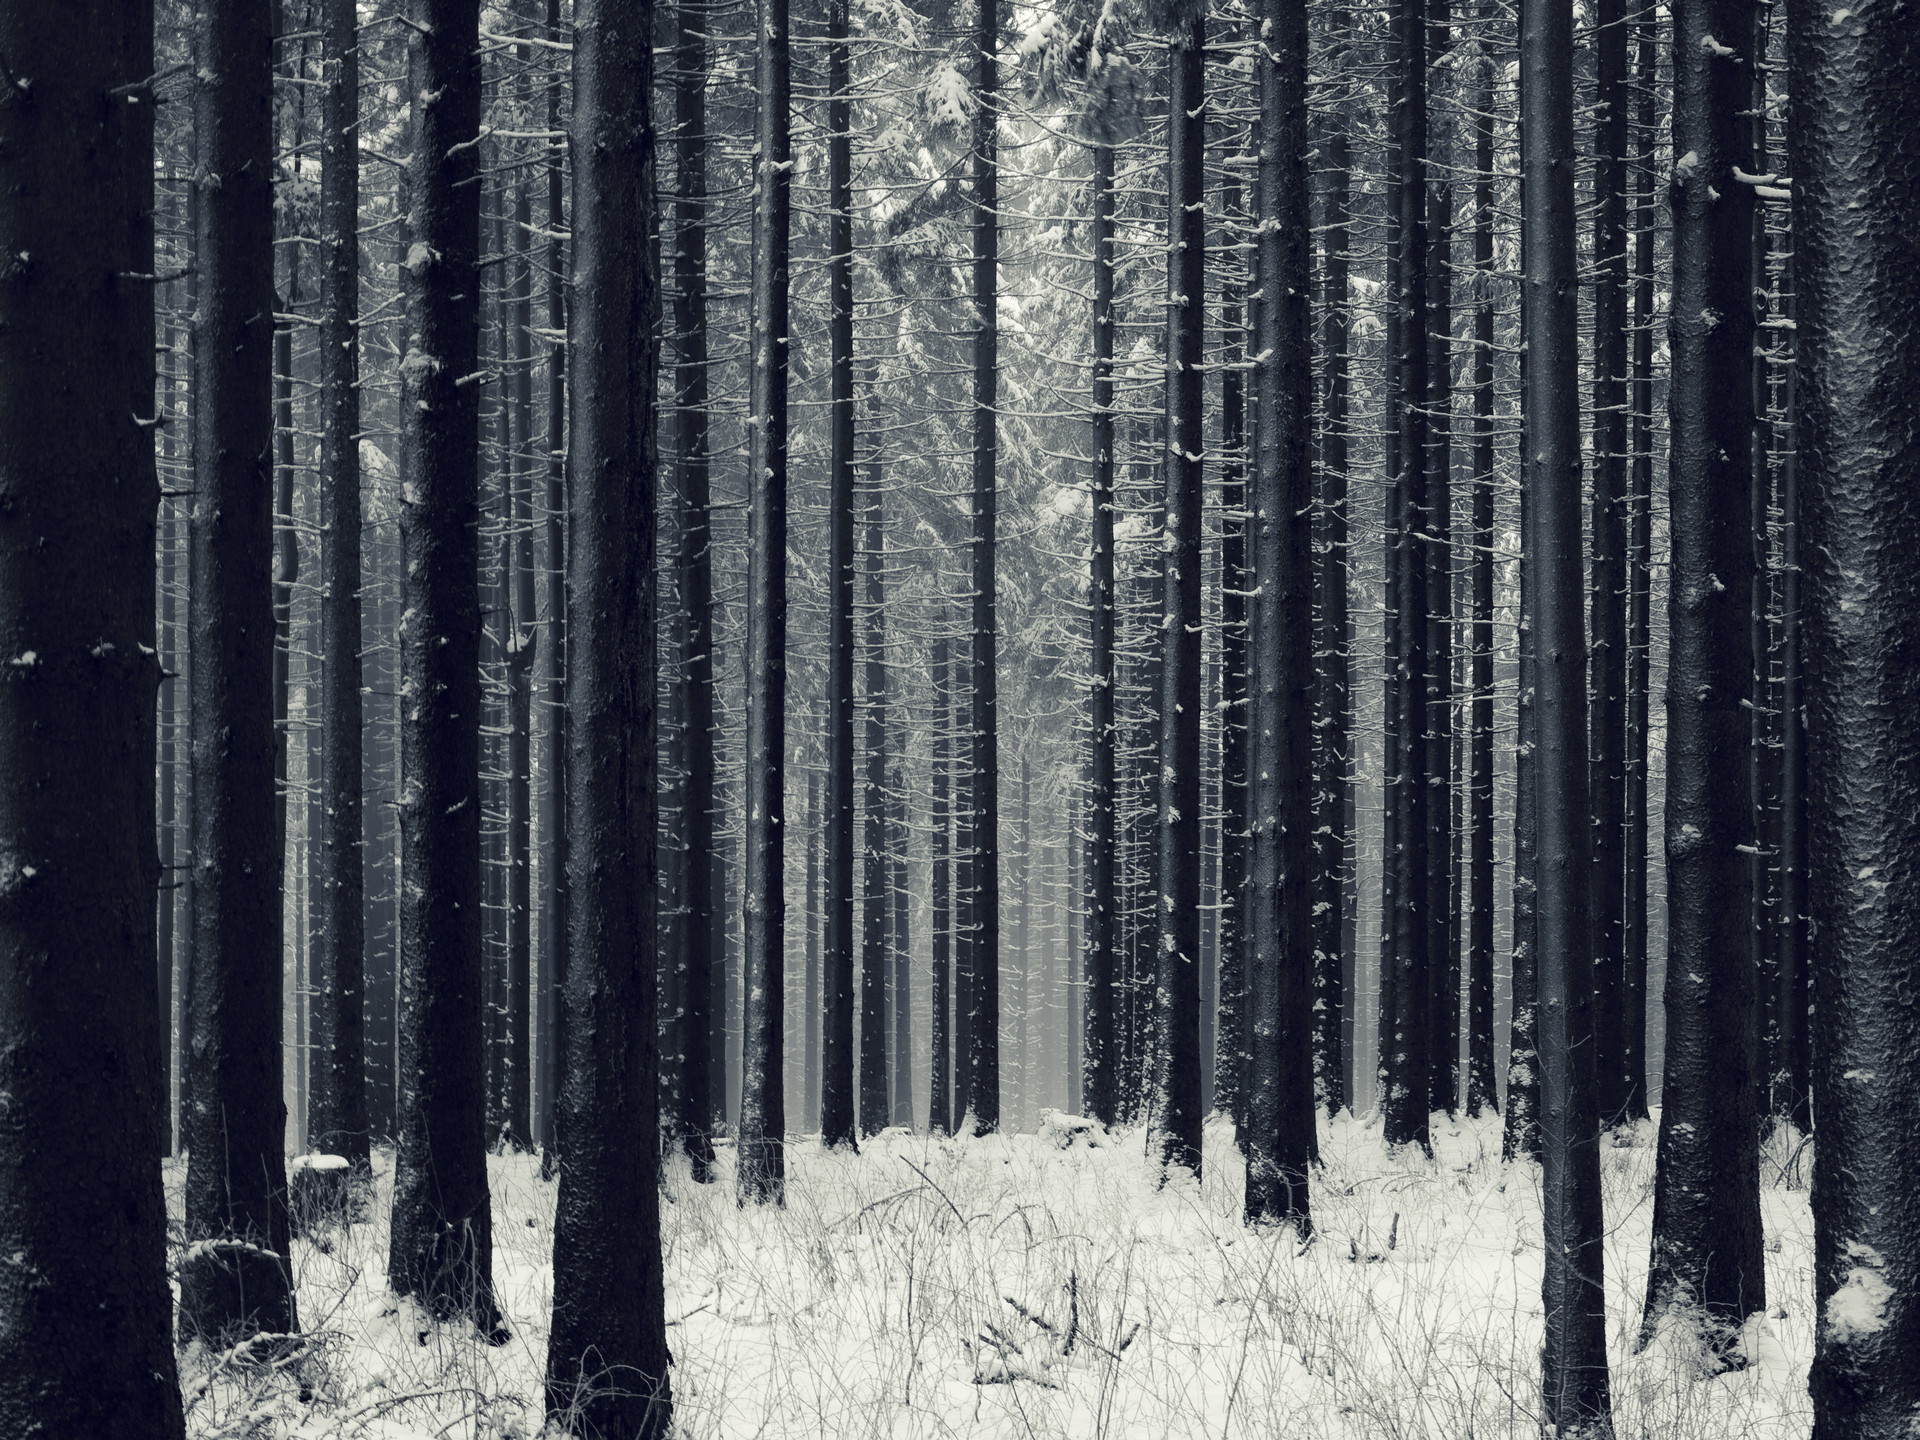 1920x1440 Download Dark Woods Wallpaper Free.